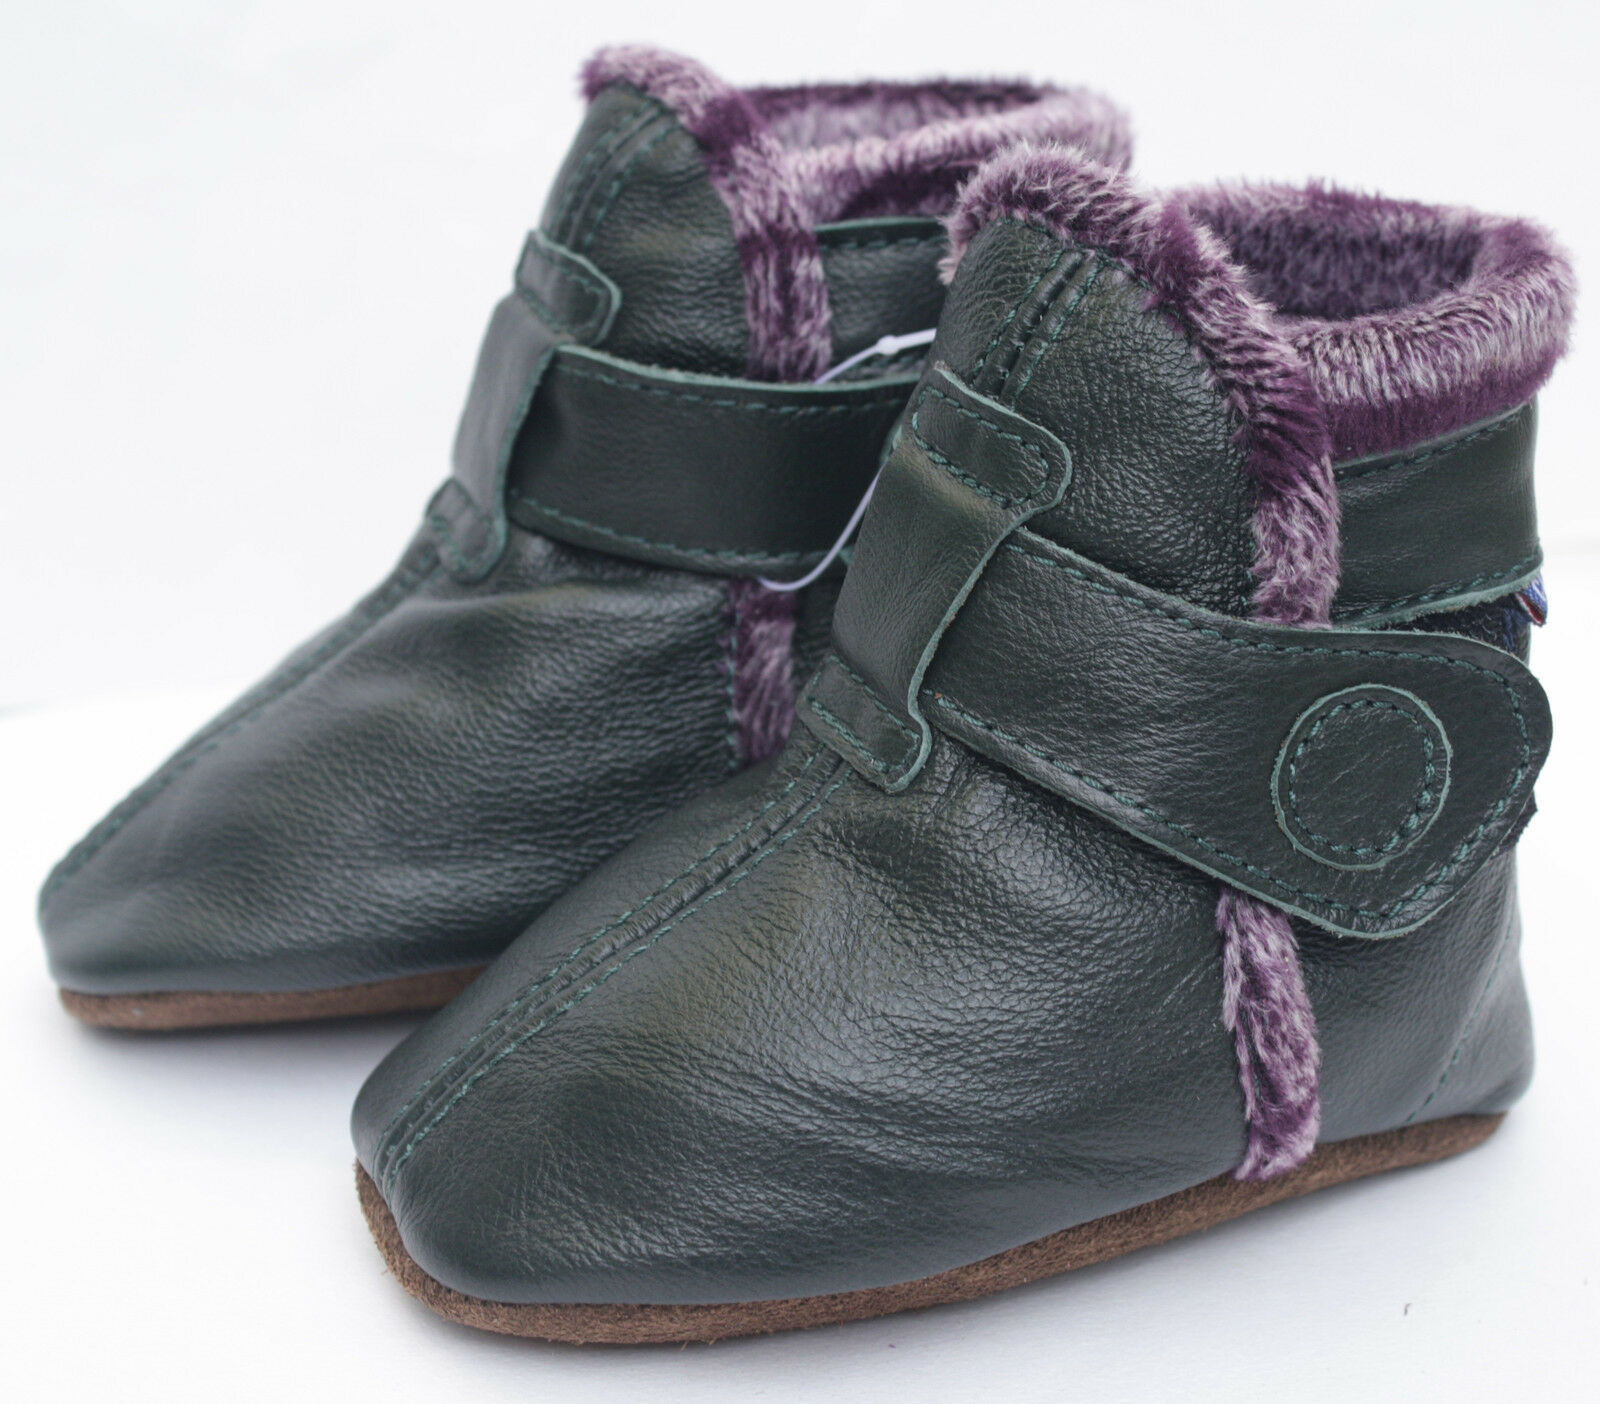 Carozoo BOOTIES Dark Green 0 6m Soft Sole Leather Baby Shoes